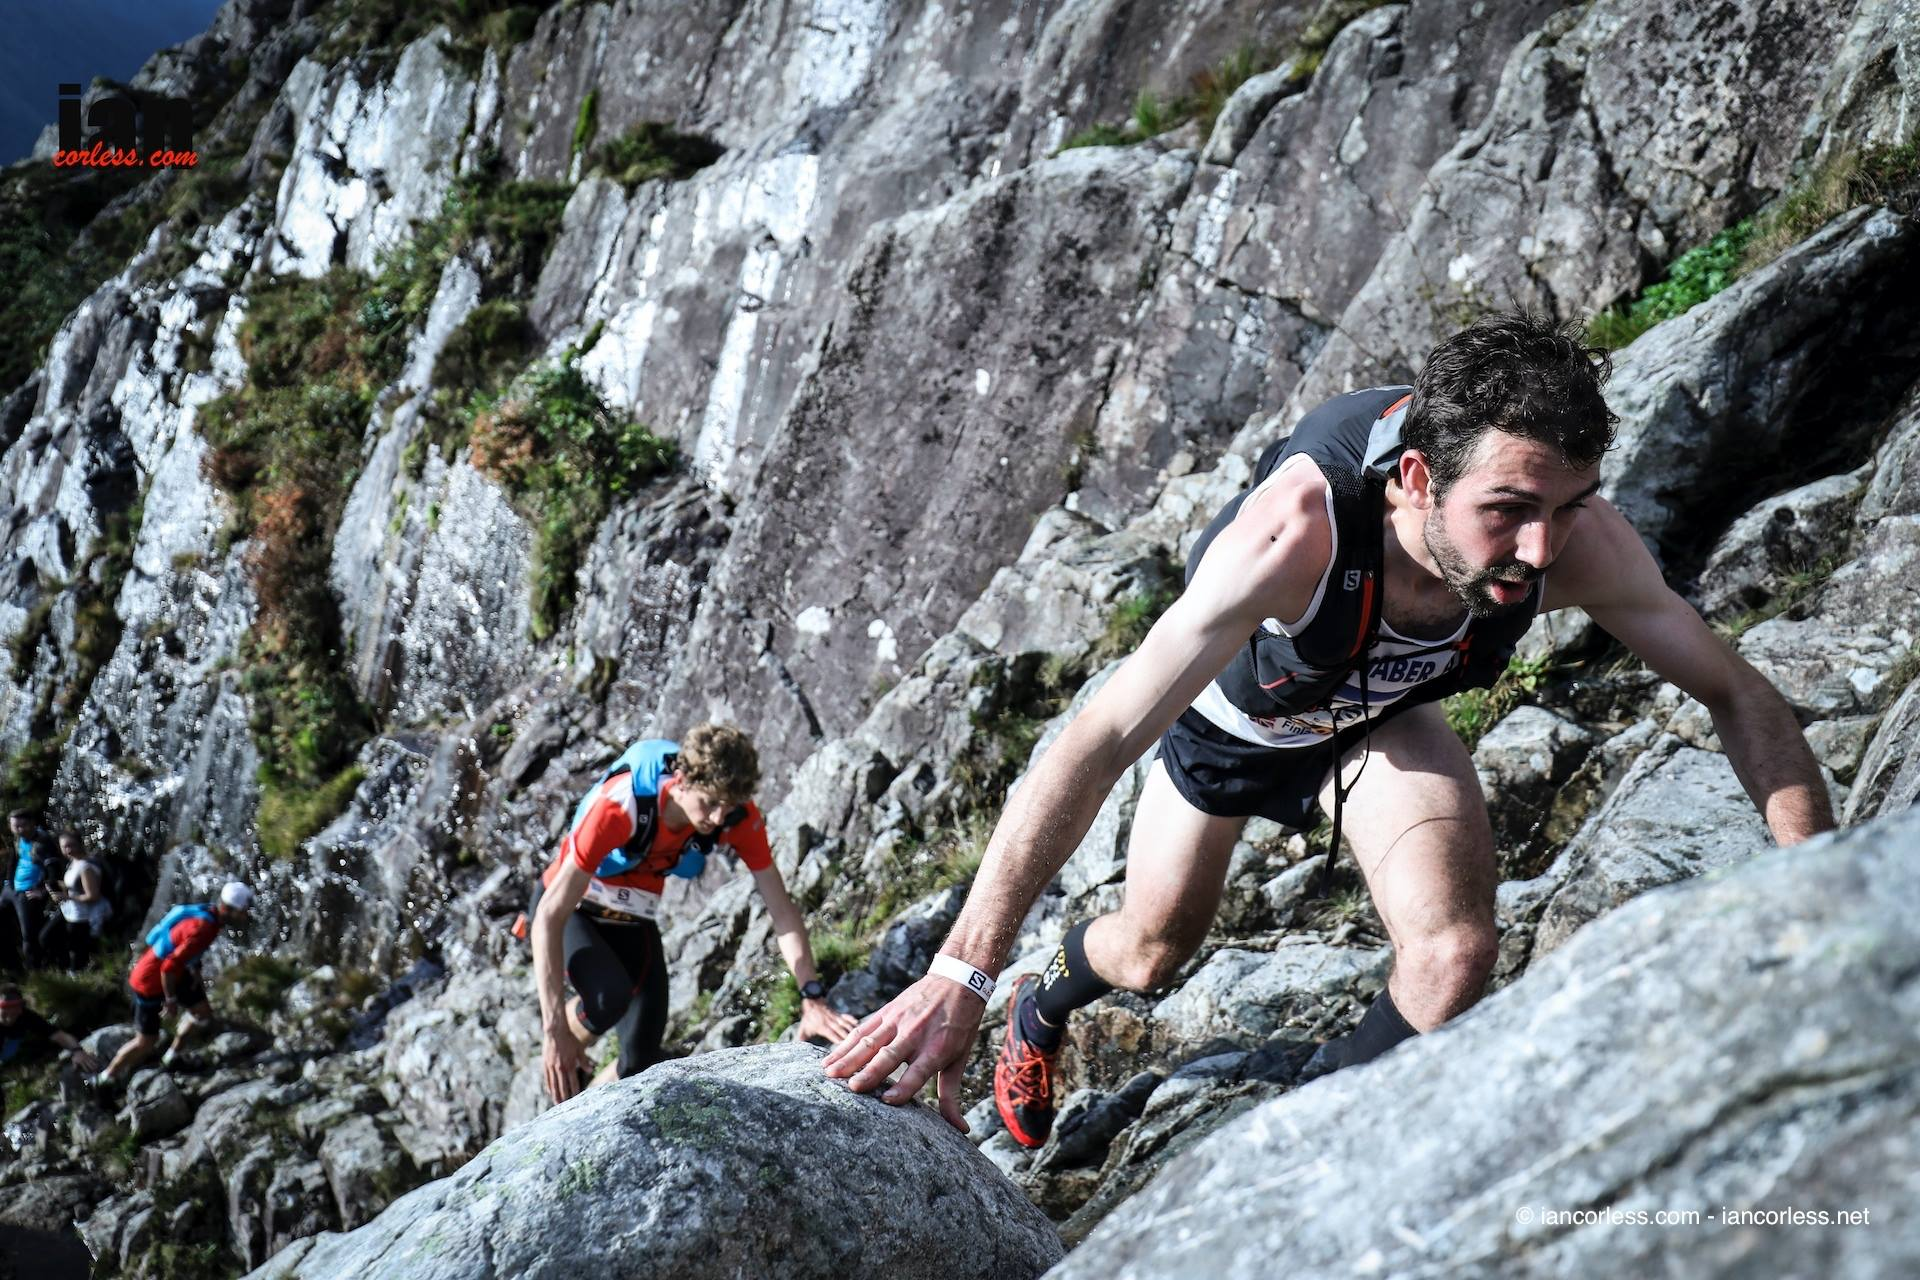 Seven times winner of the Ben Nevis race, Finlay Wild during this years Skyline © iancorless.com